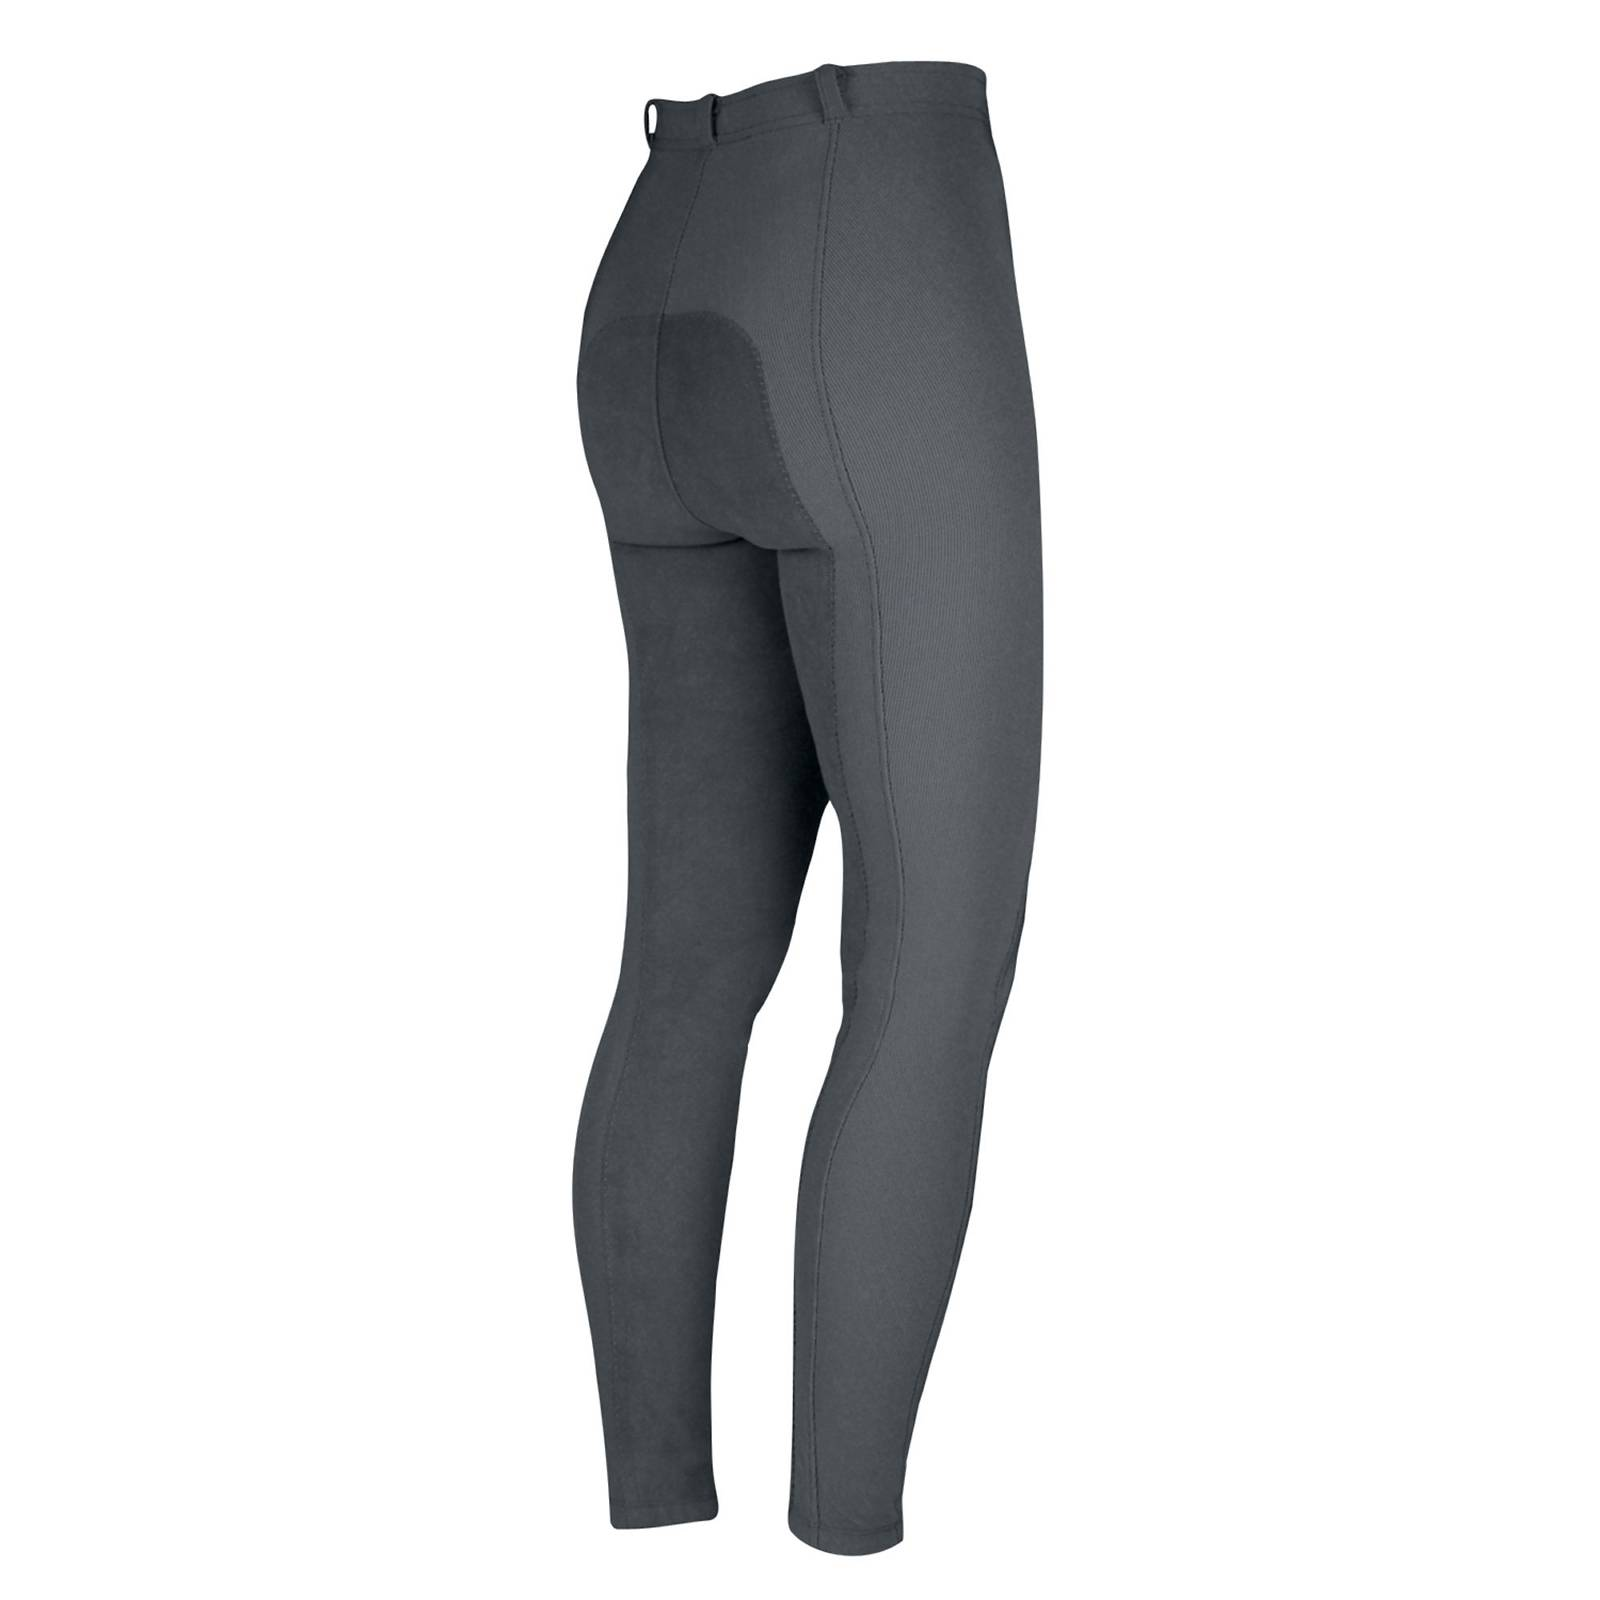 Irideon Cadence Full Seat Breeches - Ladies